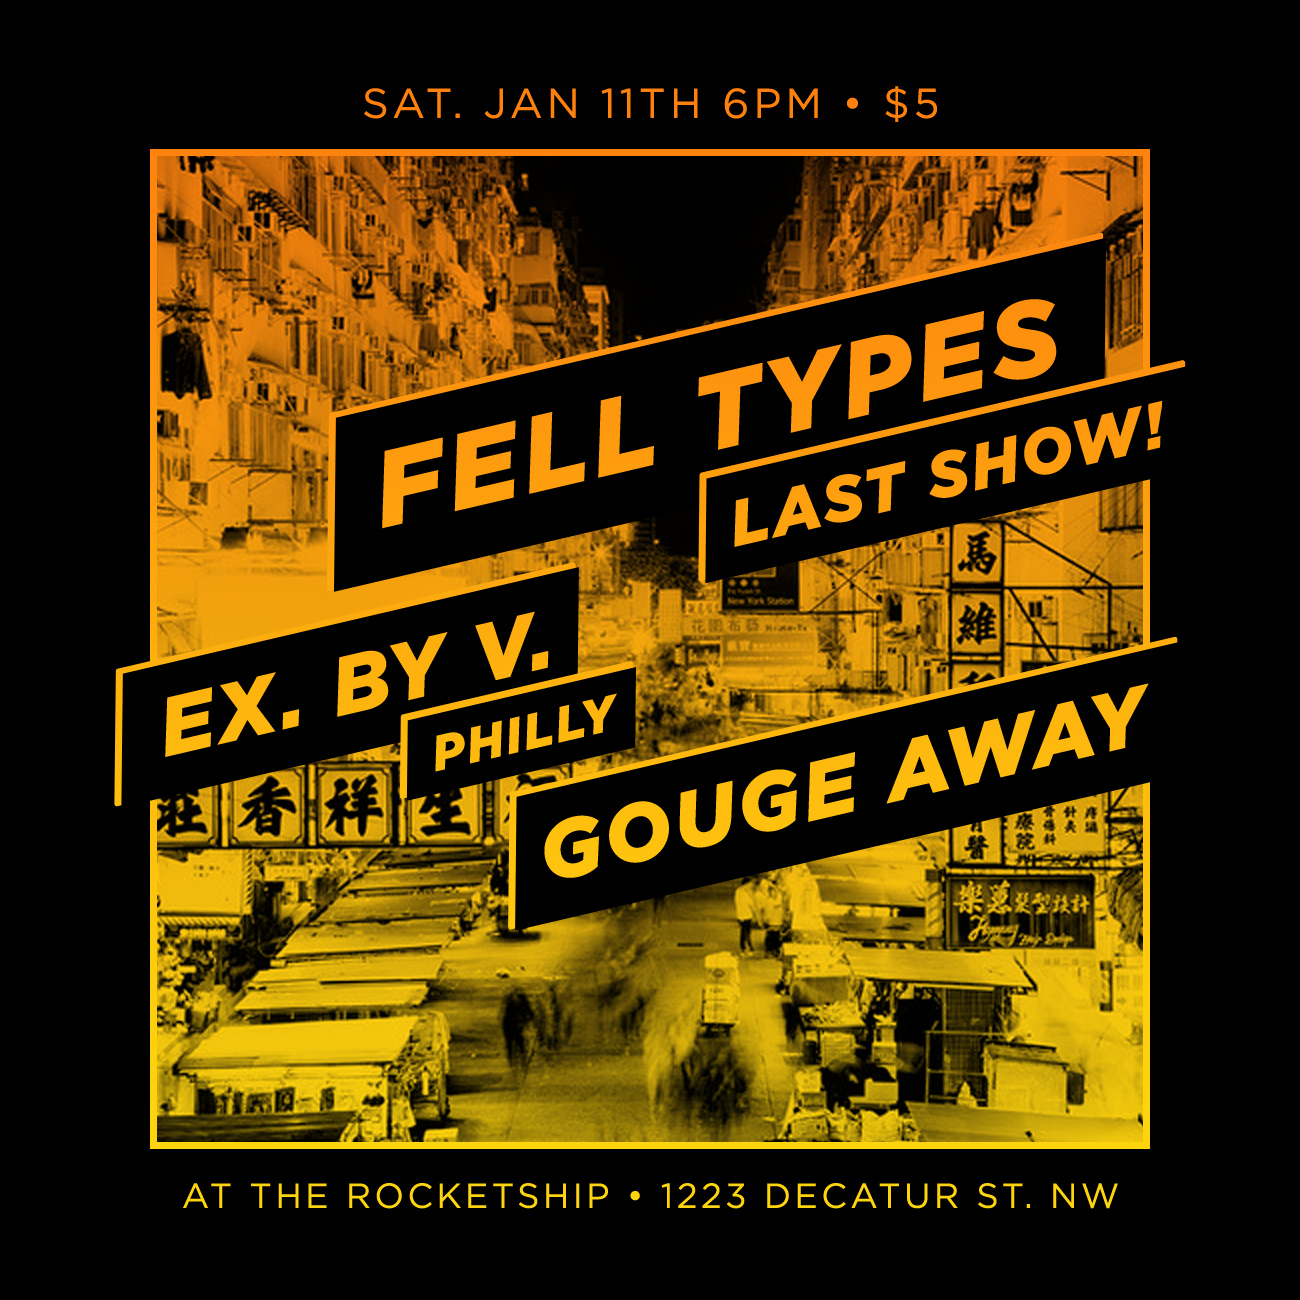 Fell Types show flyer